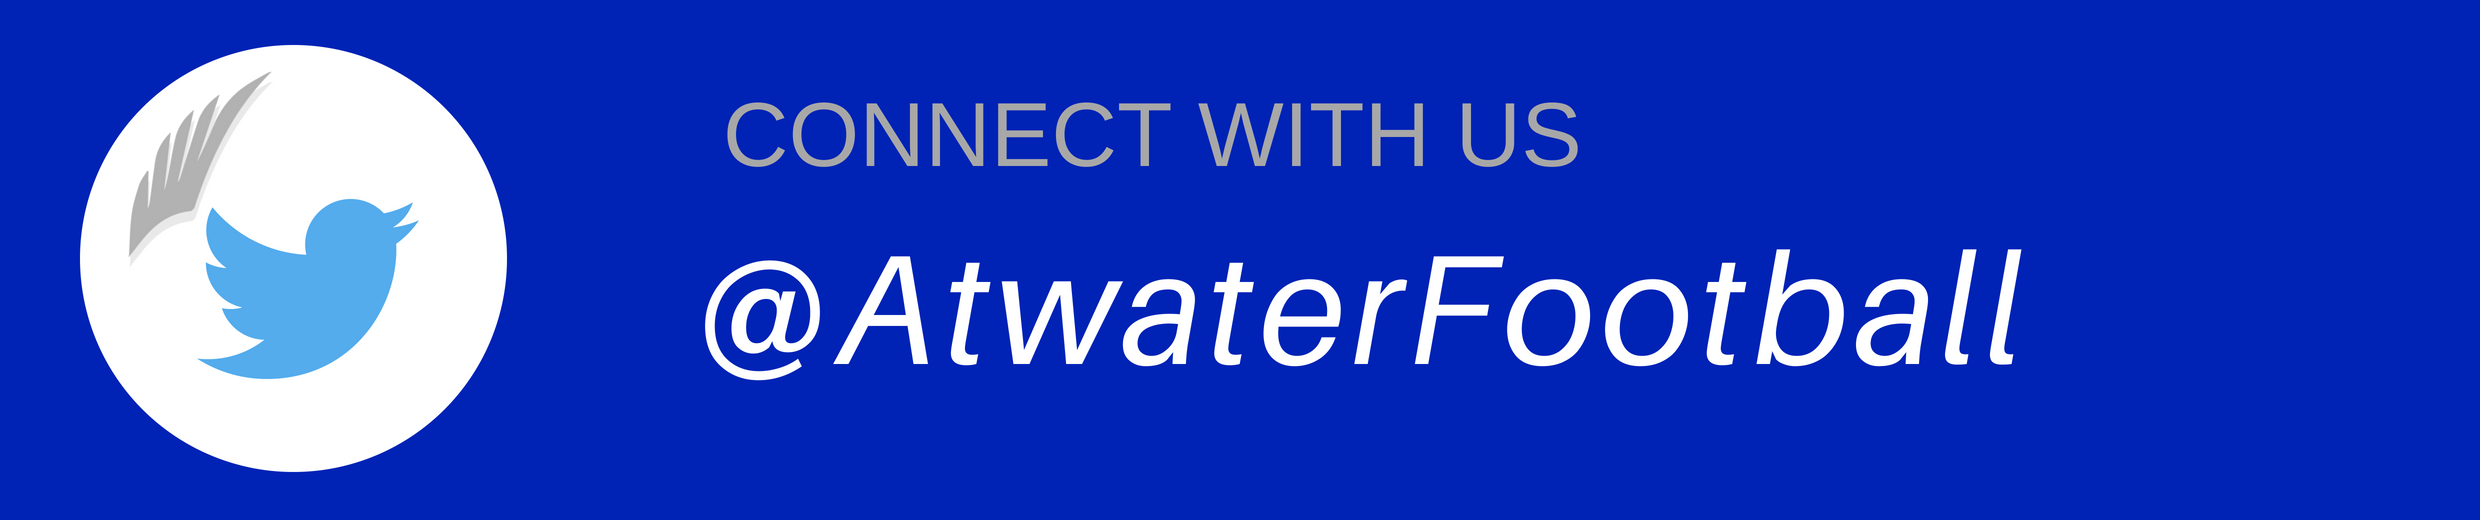 Connect with US @AtwaterFootball